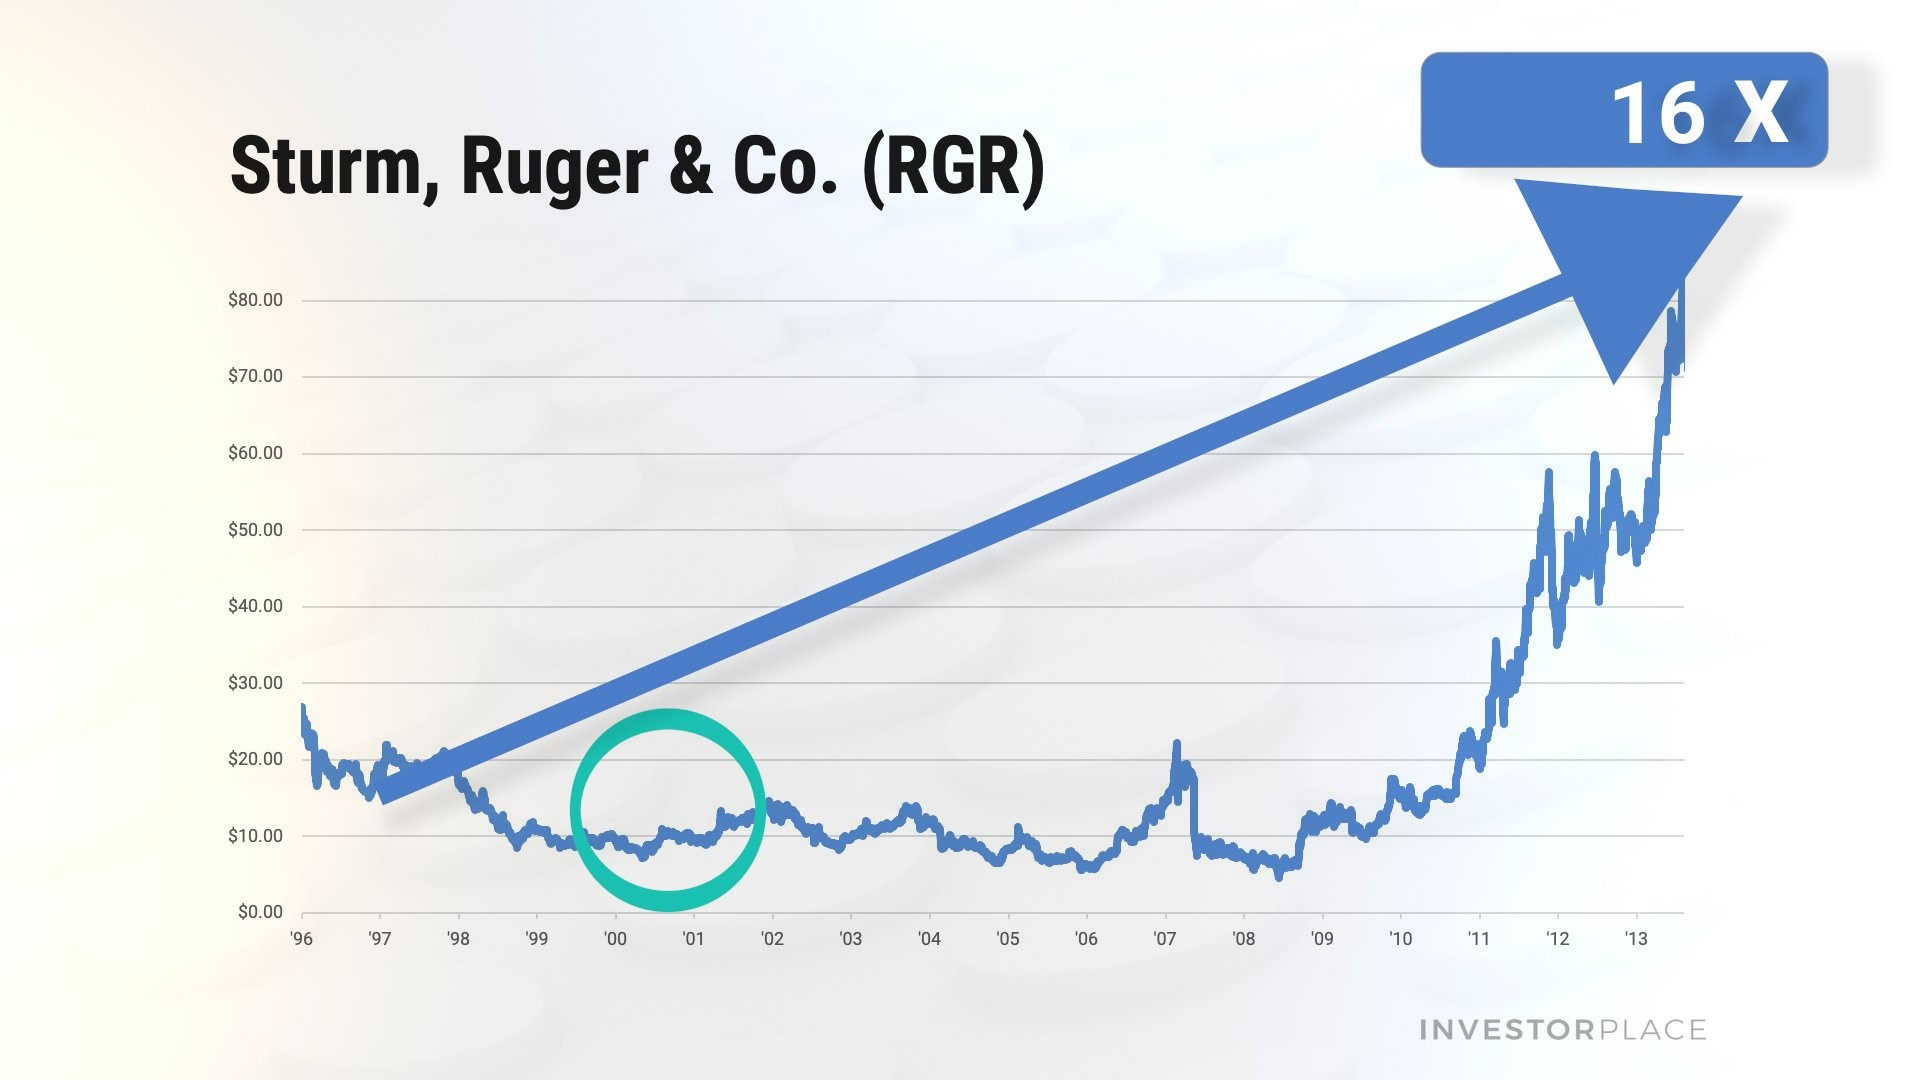 A chart showing the share price of Sturm, Ruger & Company (RGR) multiply by 16 times.